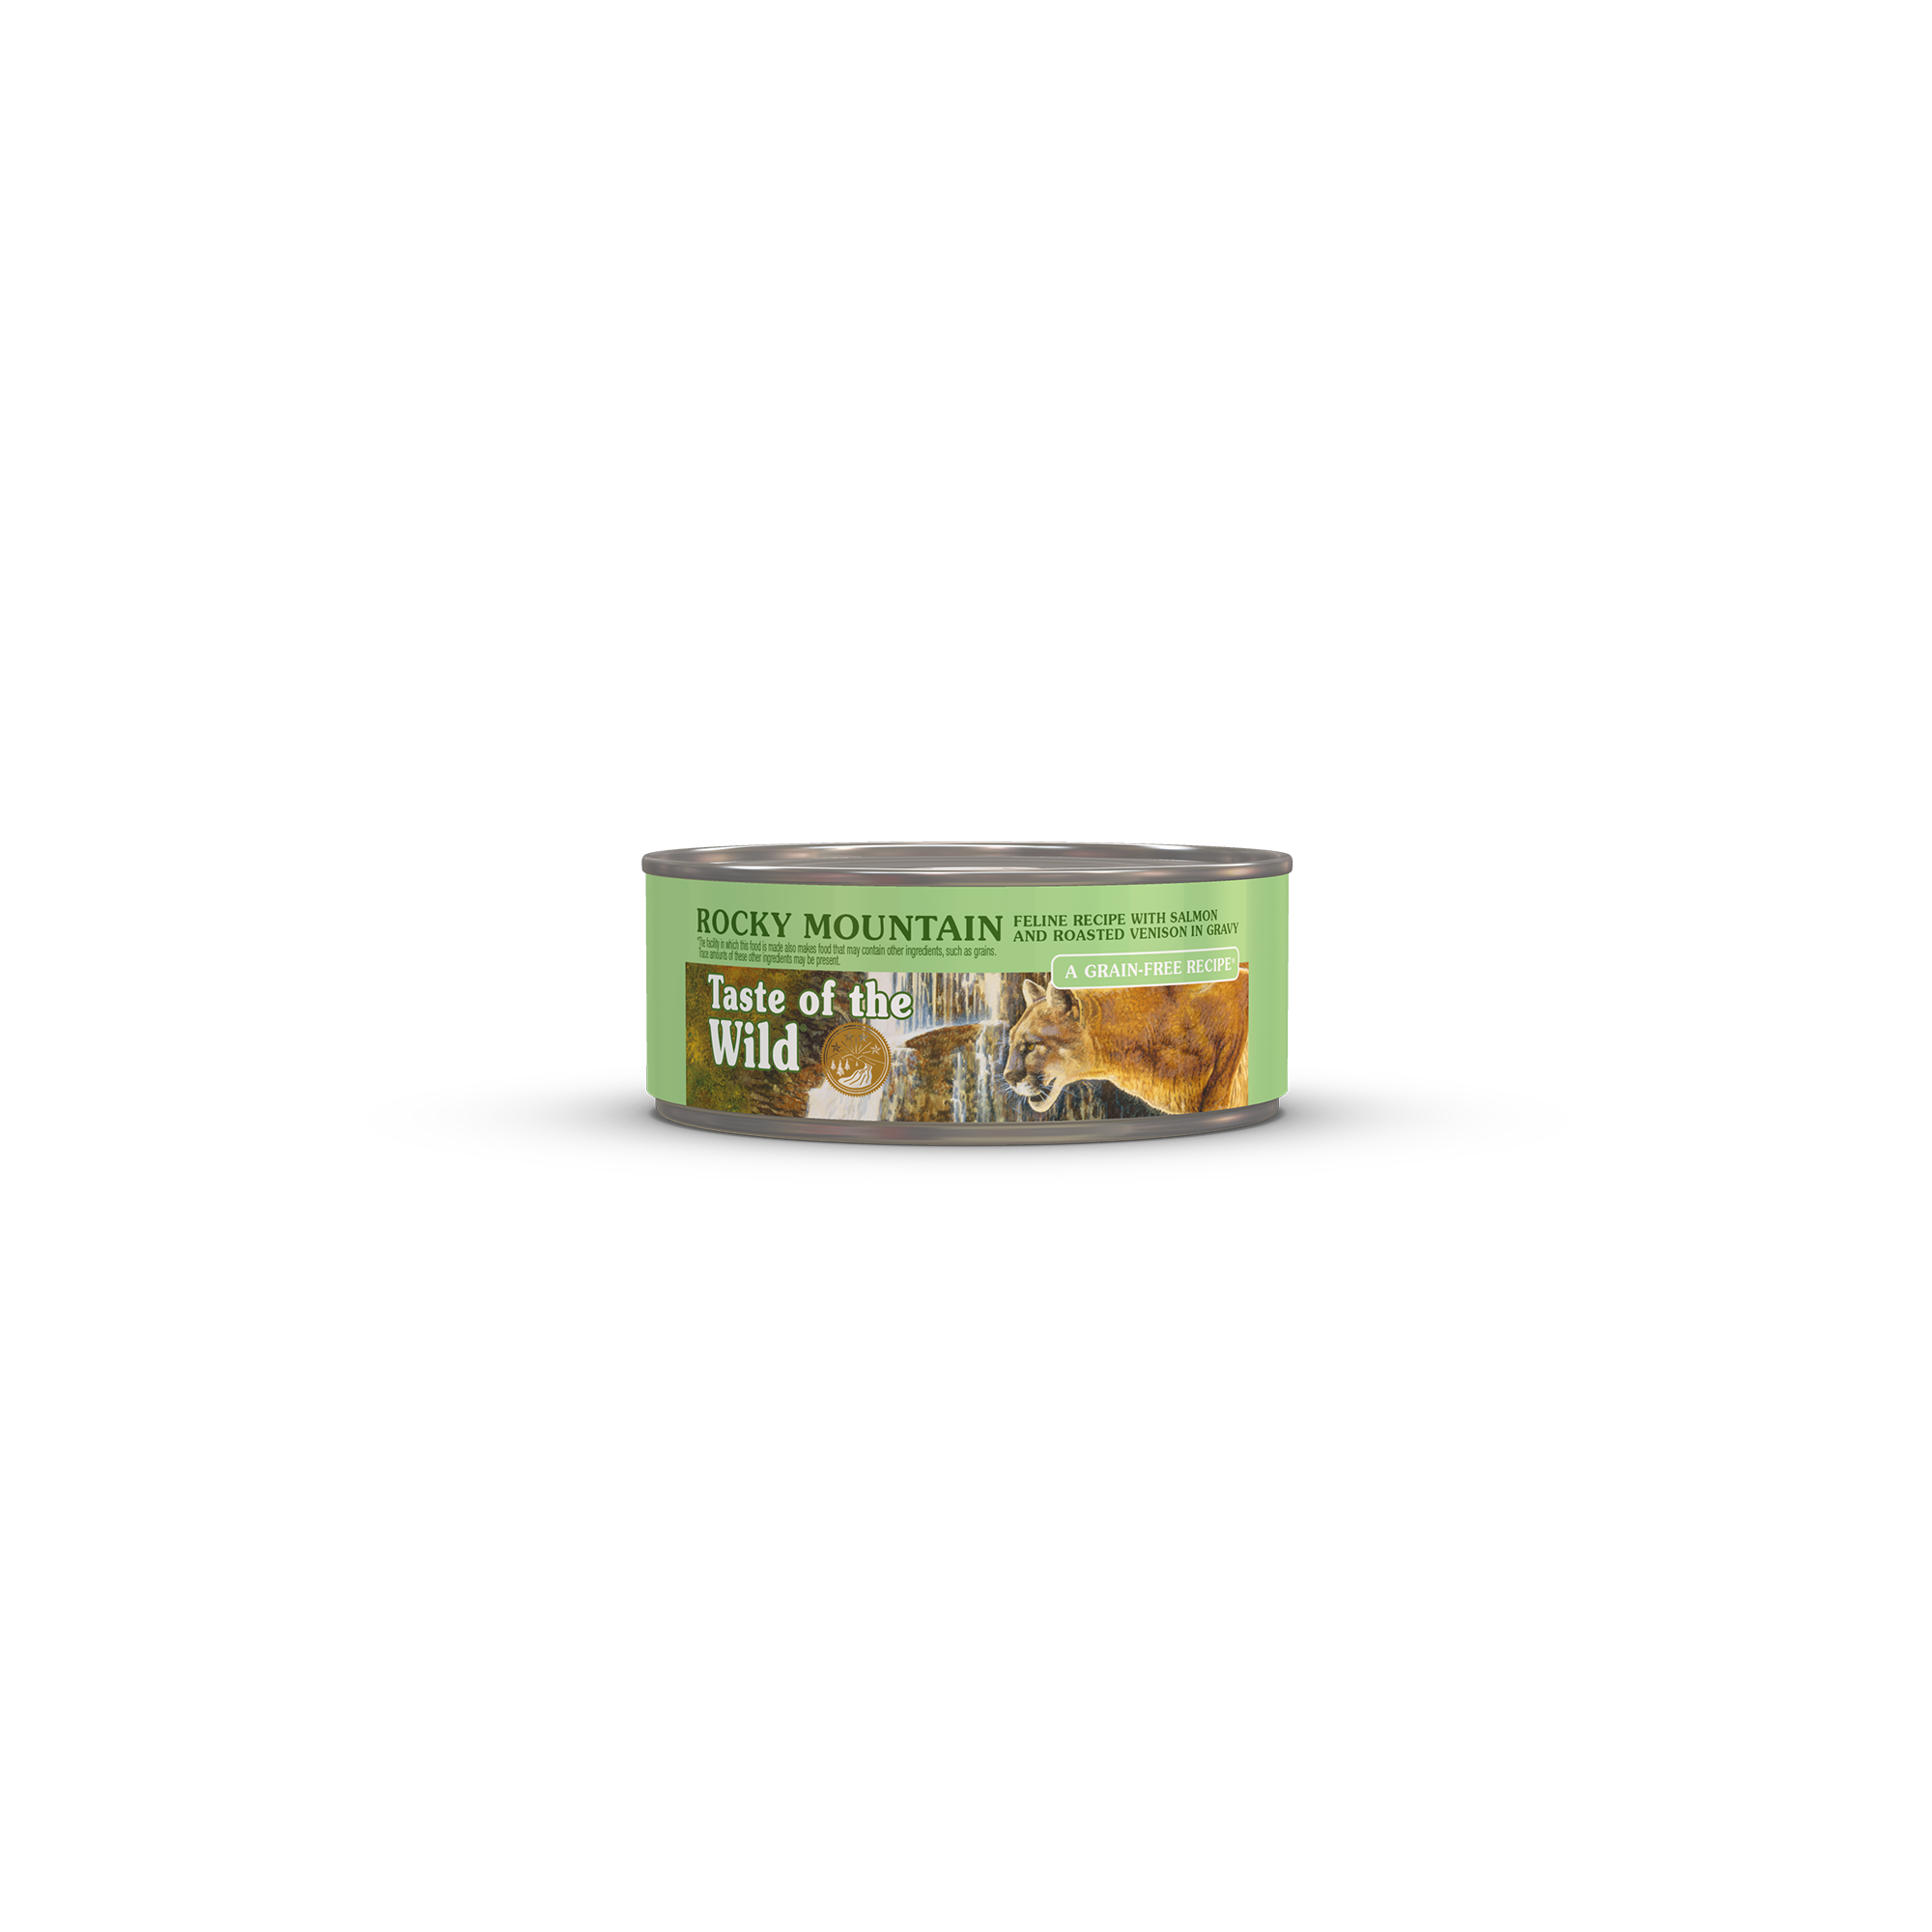 Rocky Mountain Feline Recipe with Salmon & Roasted Venison in Gravy can front